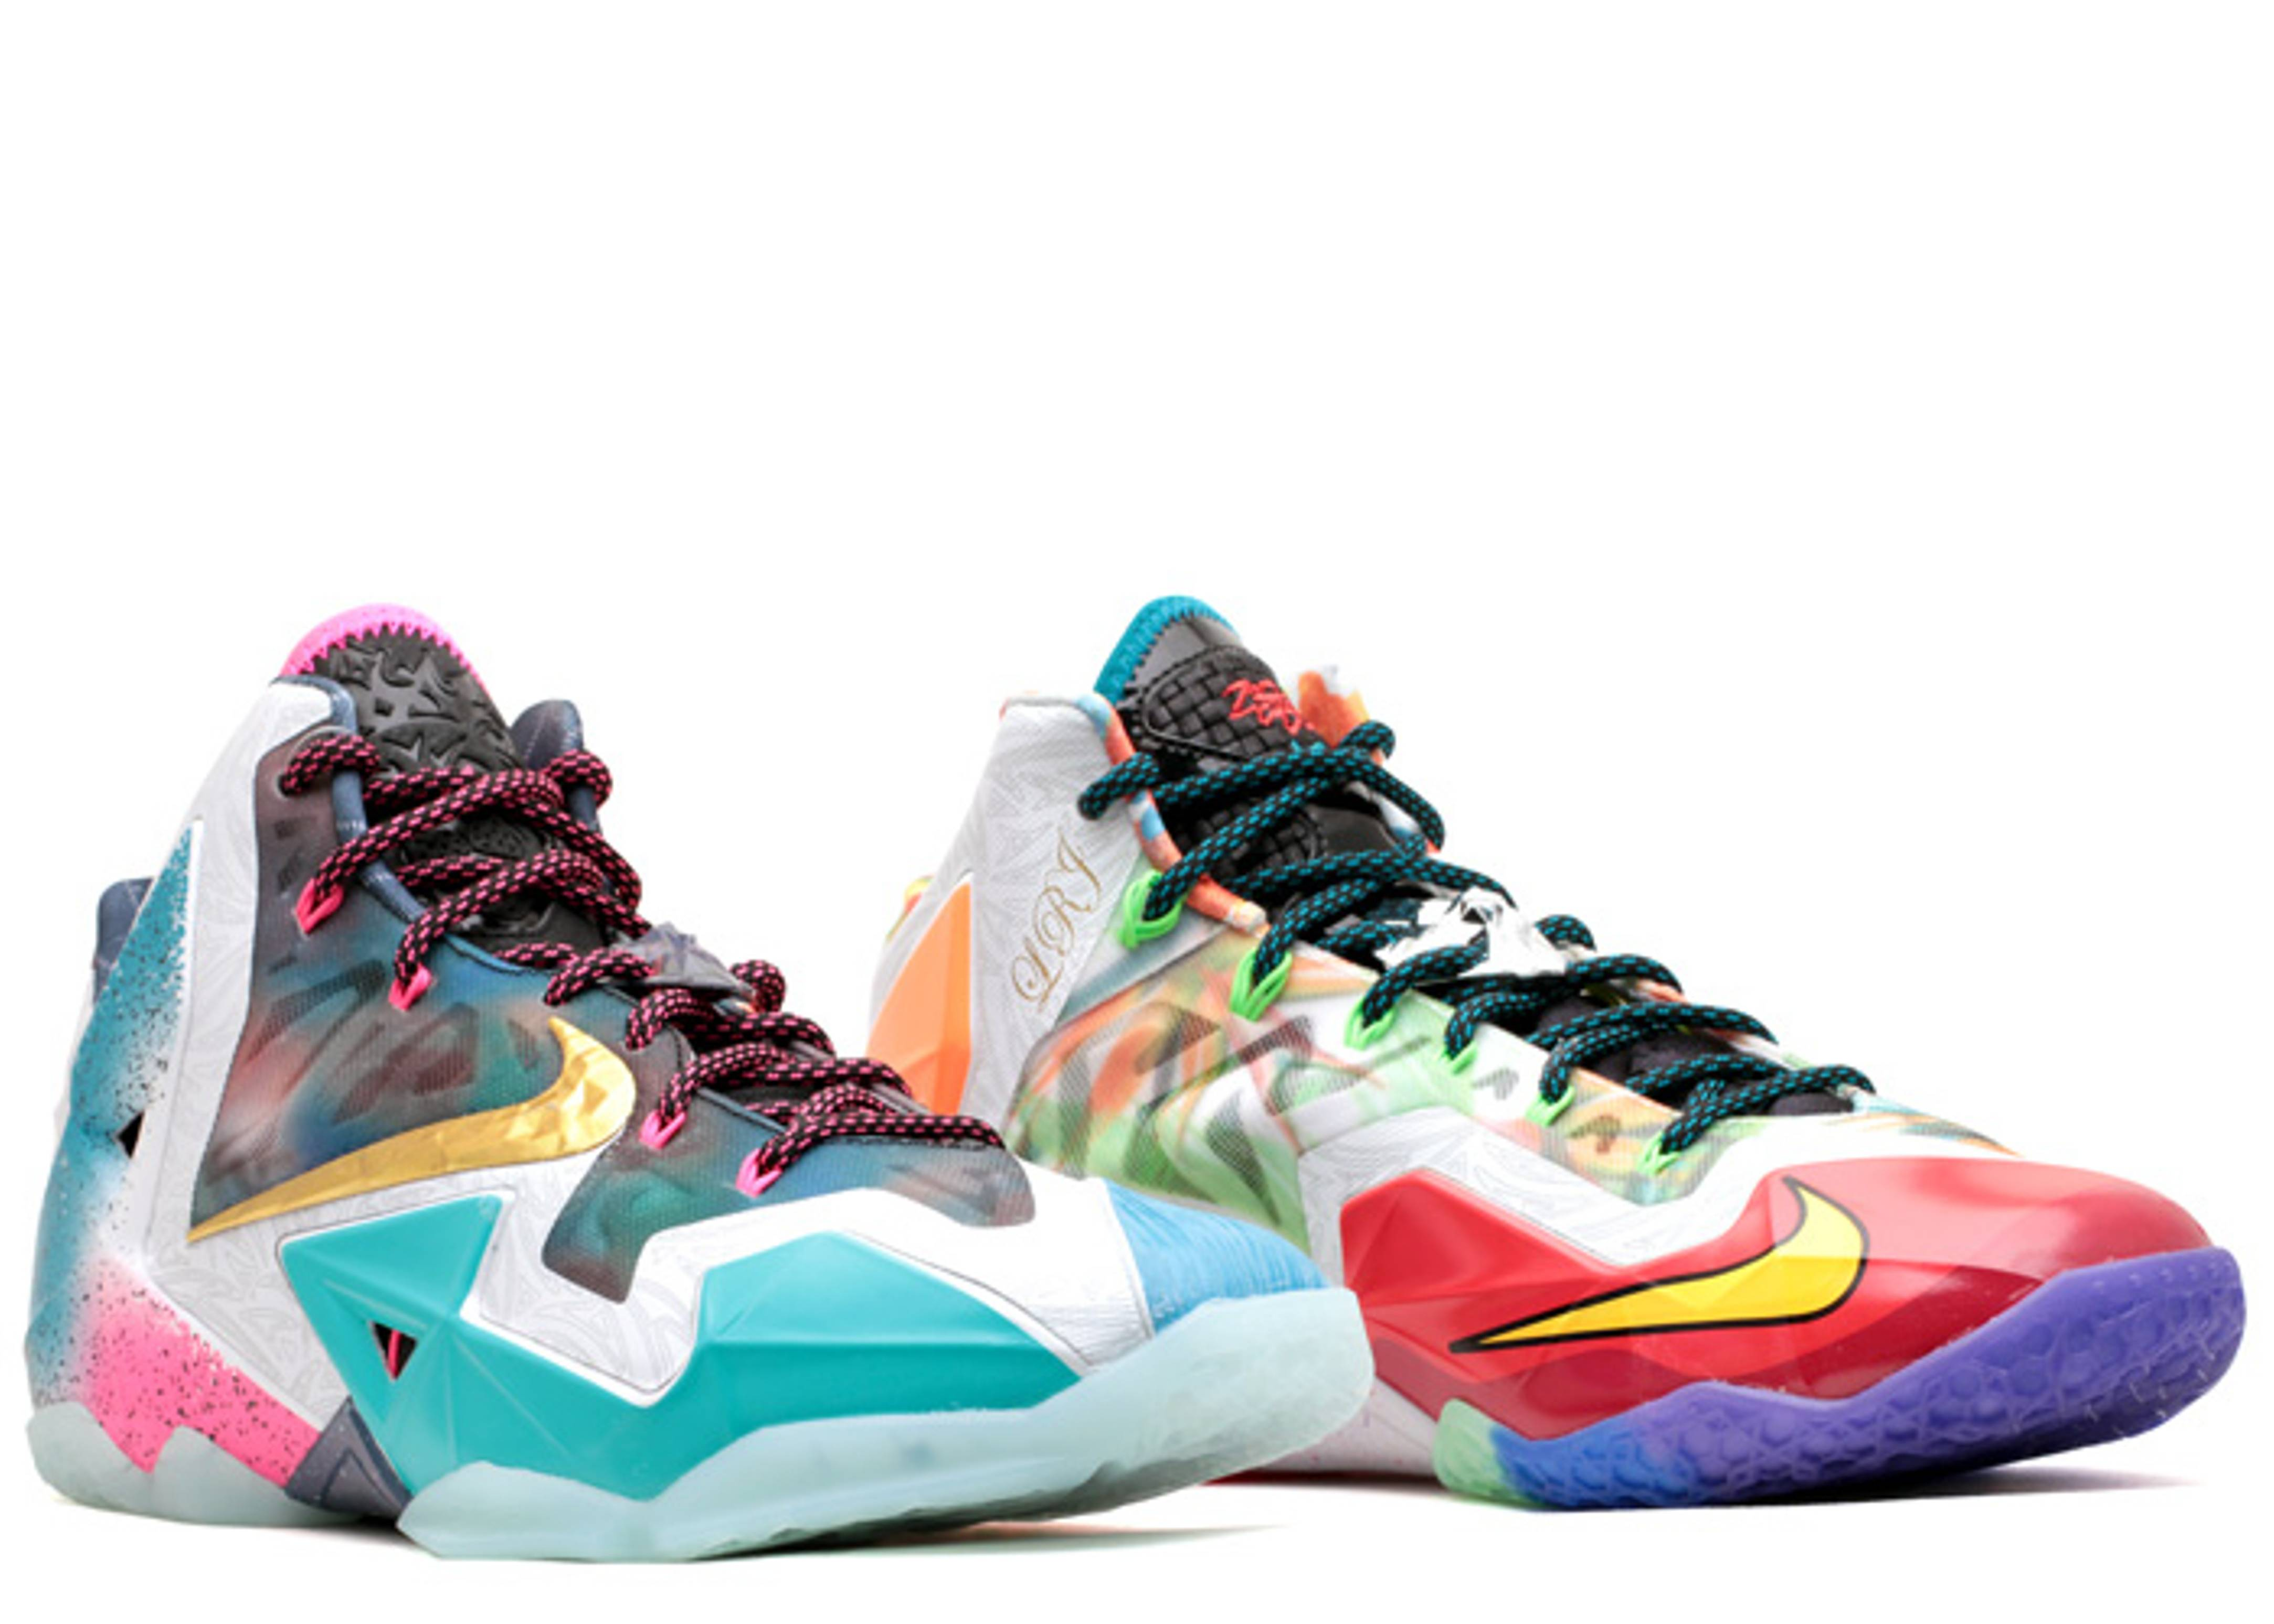 8ffb16a4dd7 lebron james shoes in order Sale